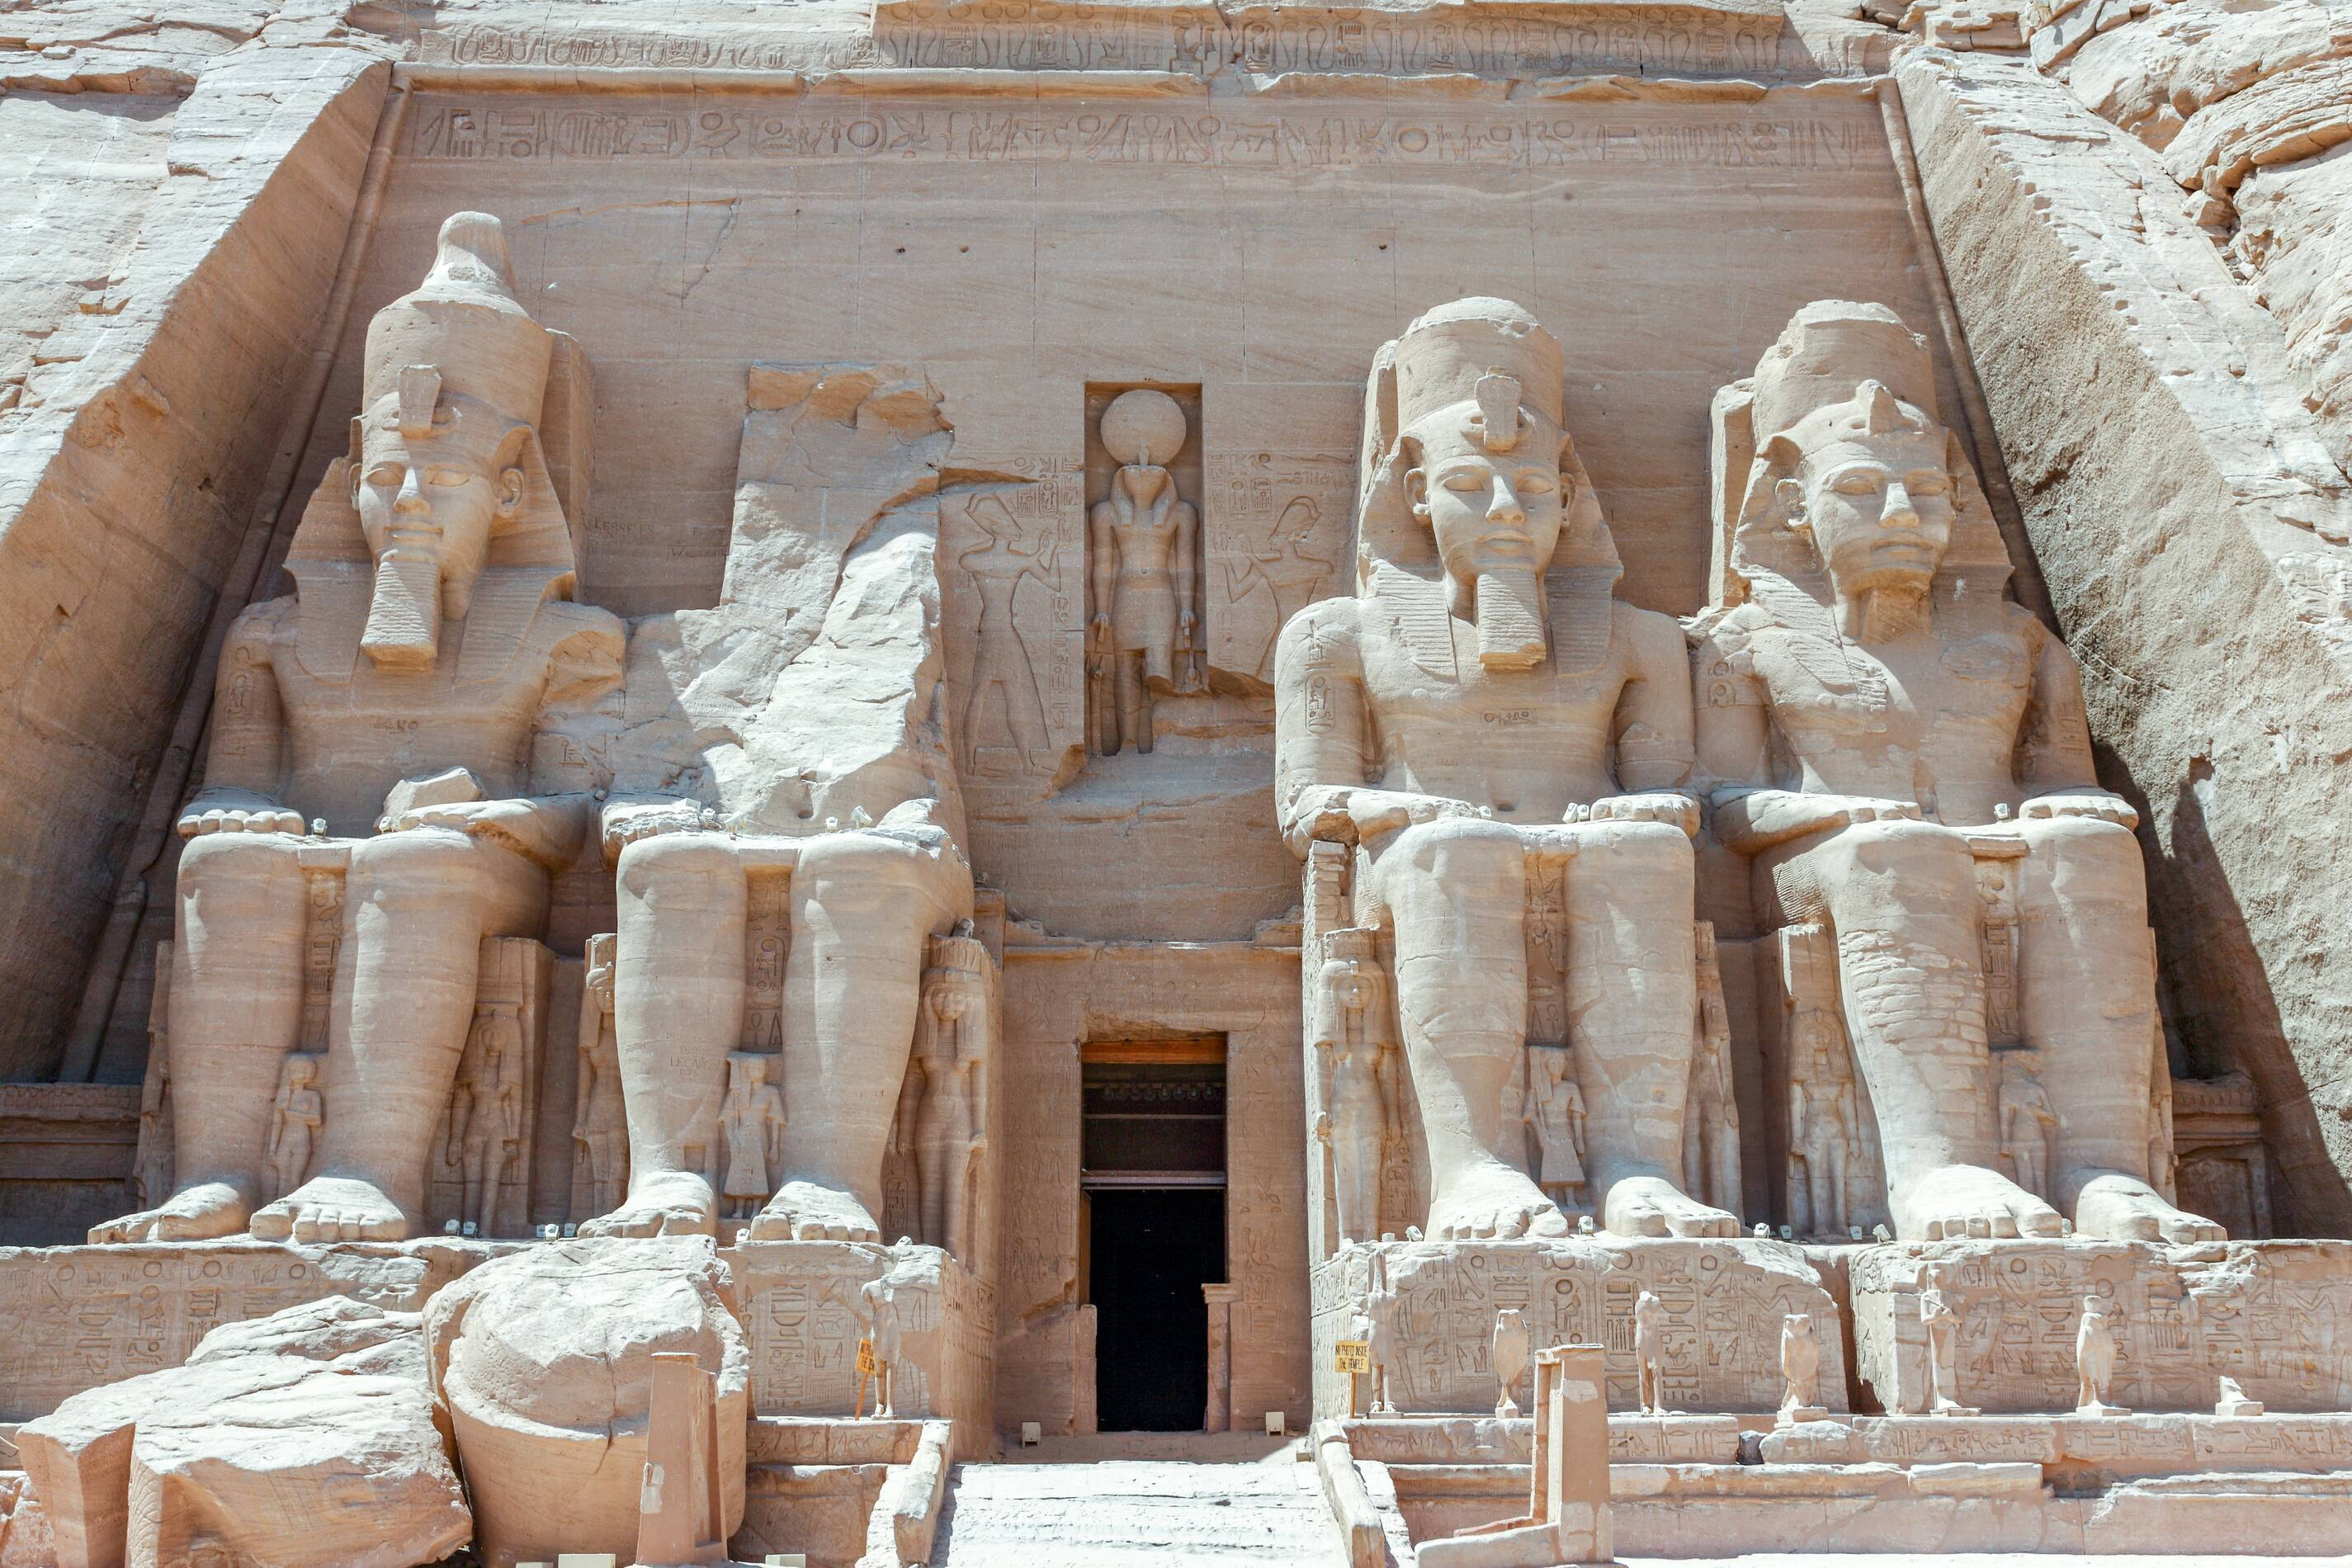 une excursion à Abu Simbel